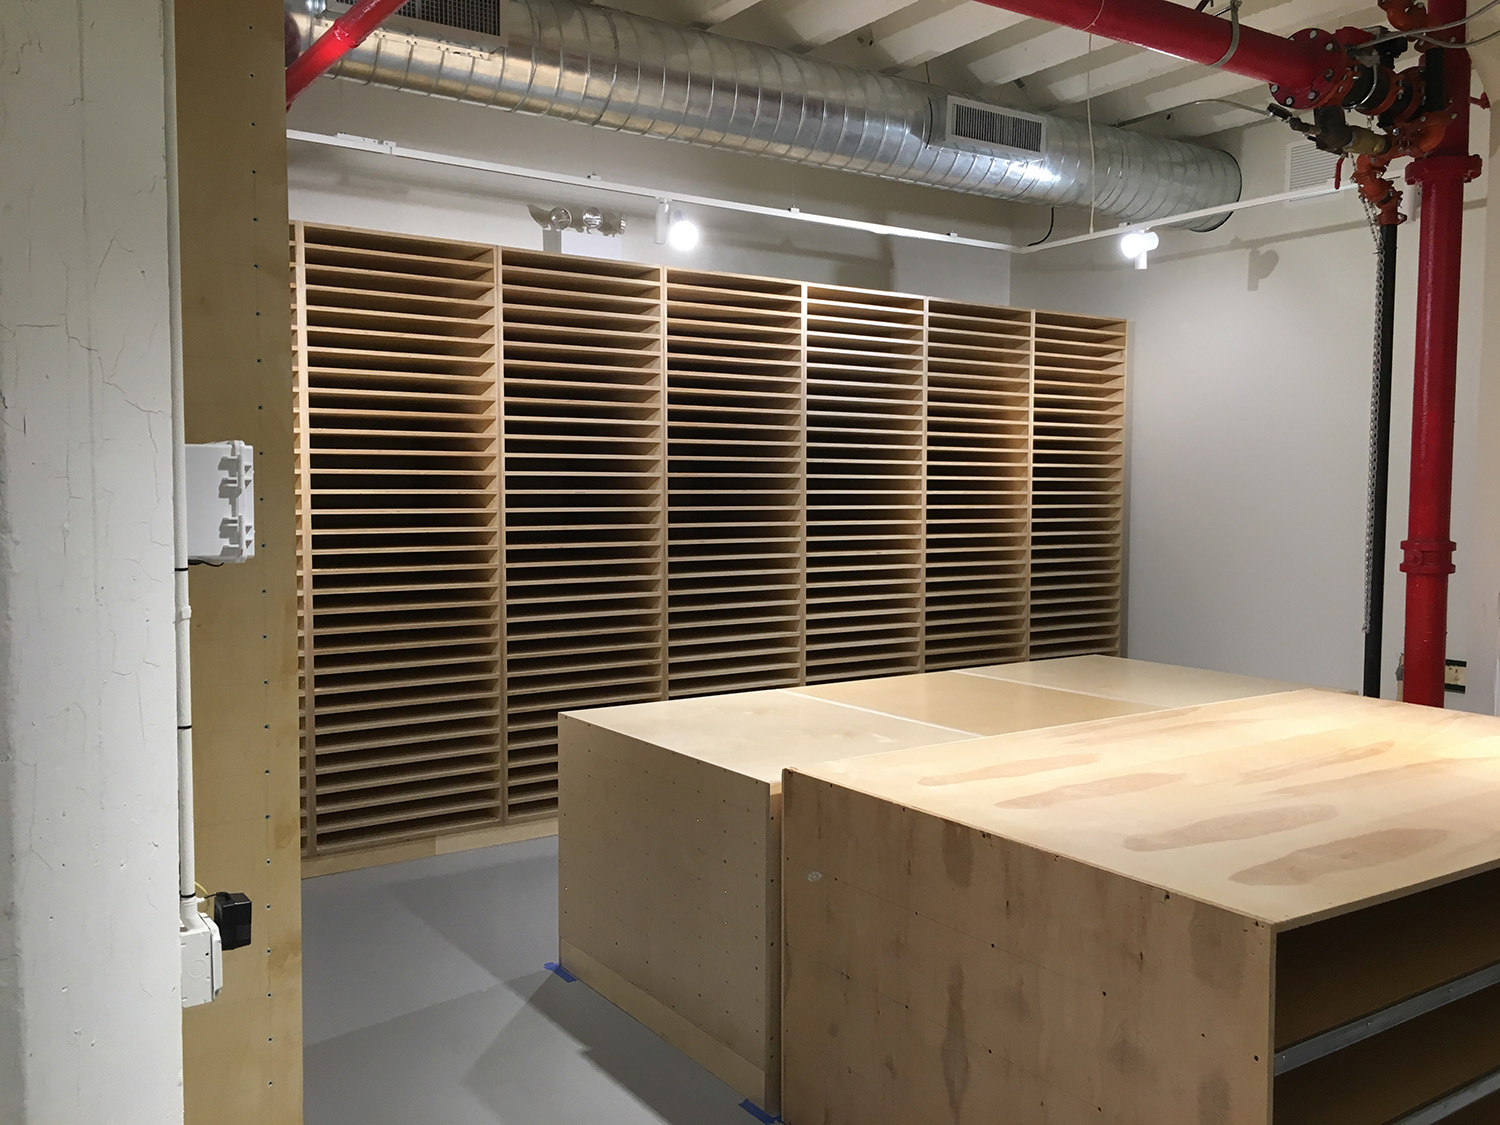 Flat file storage for Robert Motherwell's art work